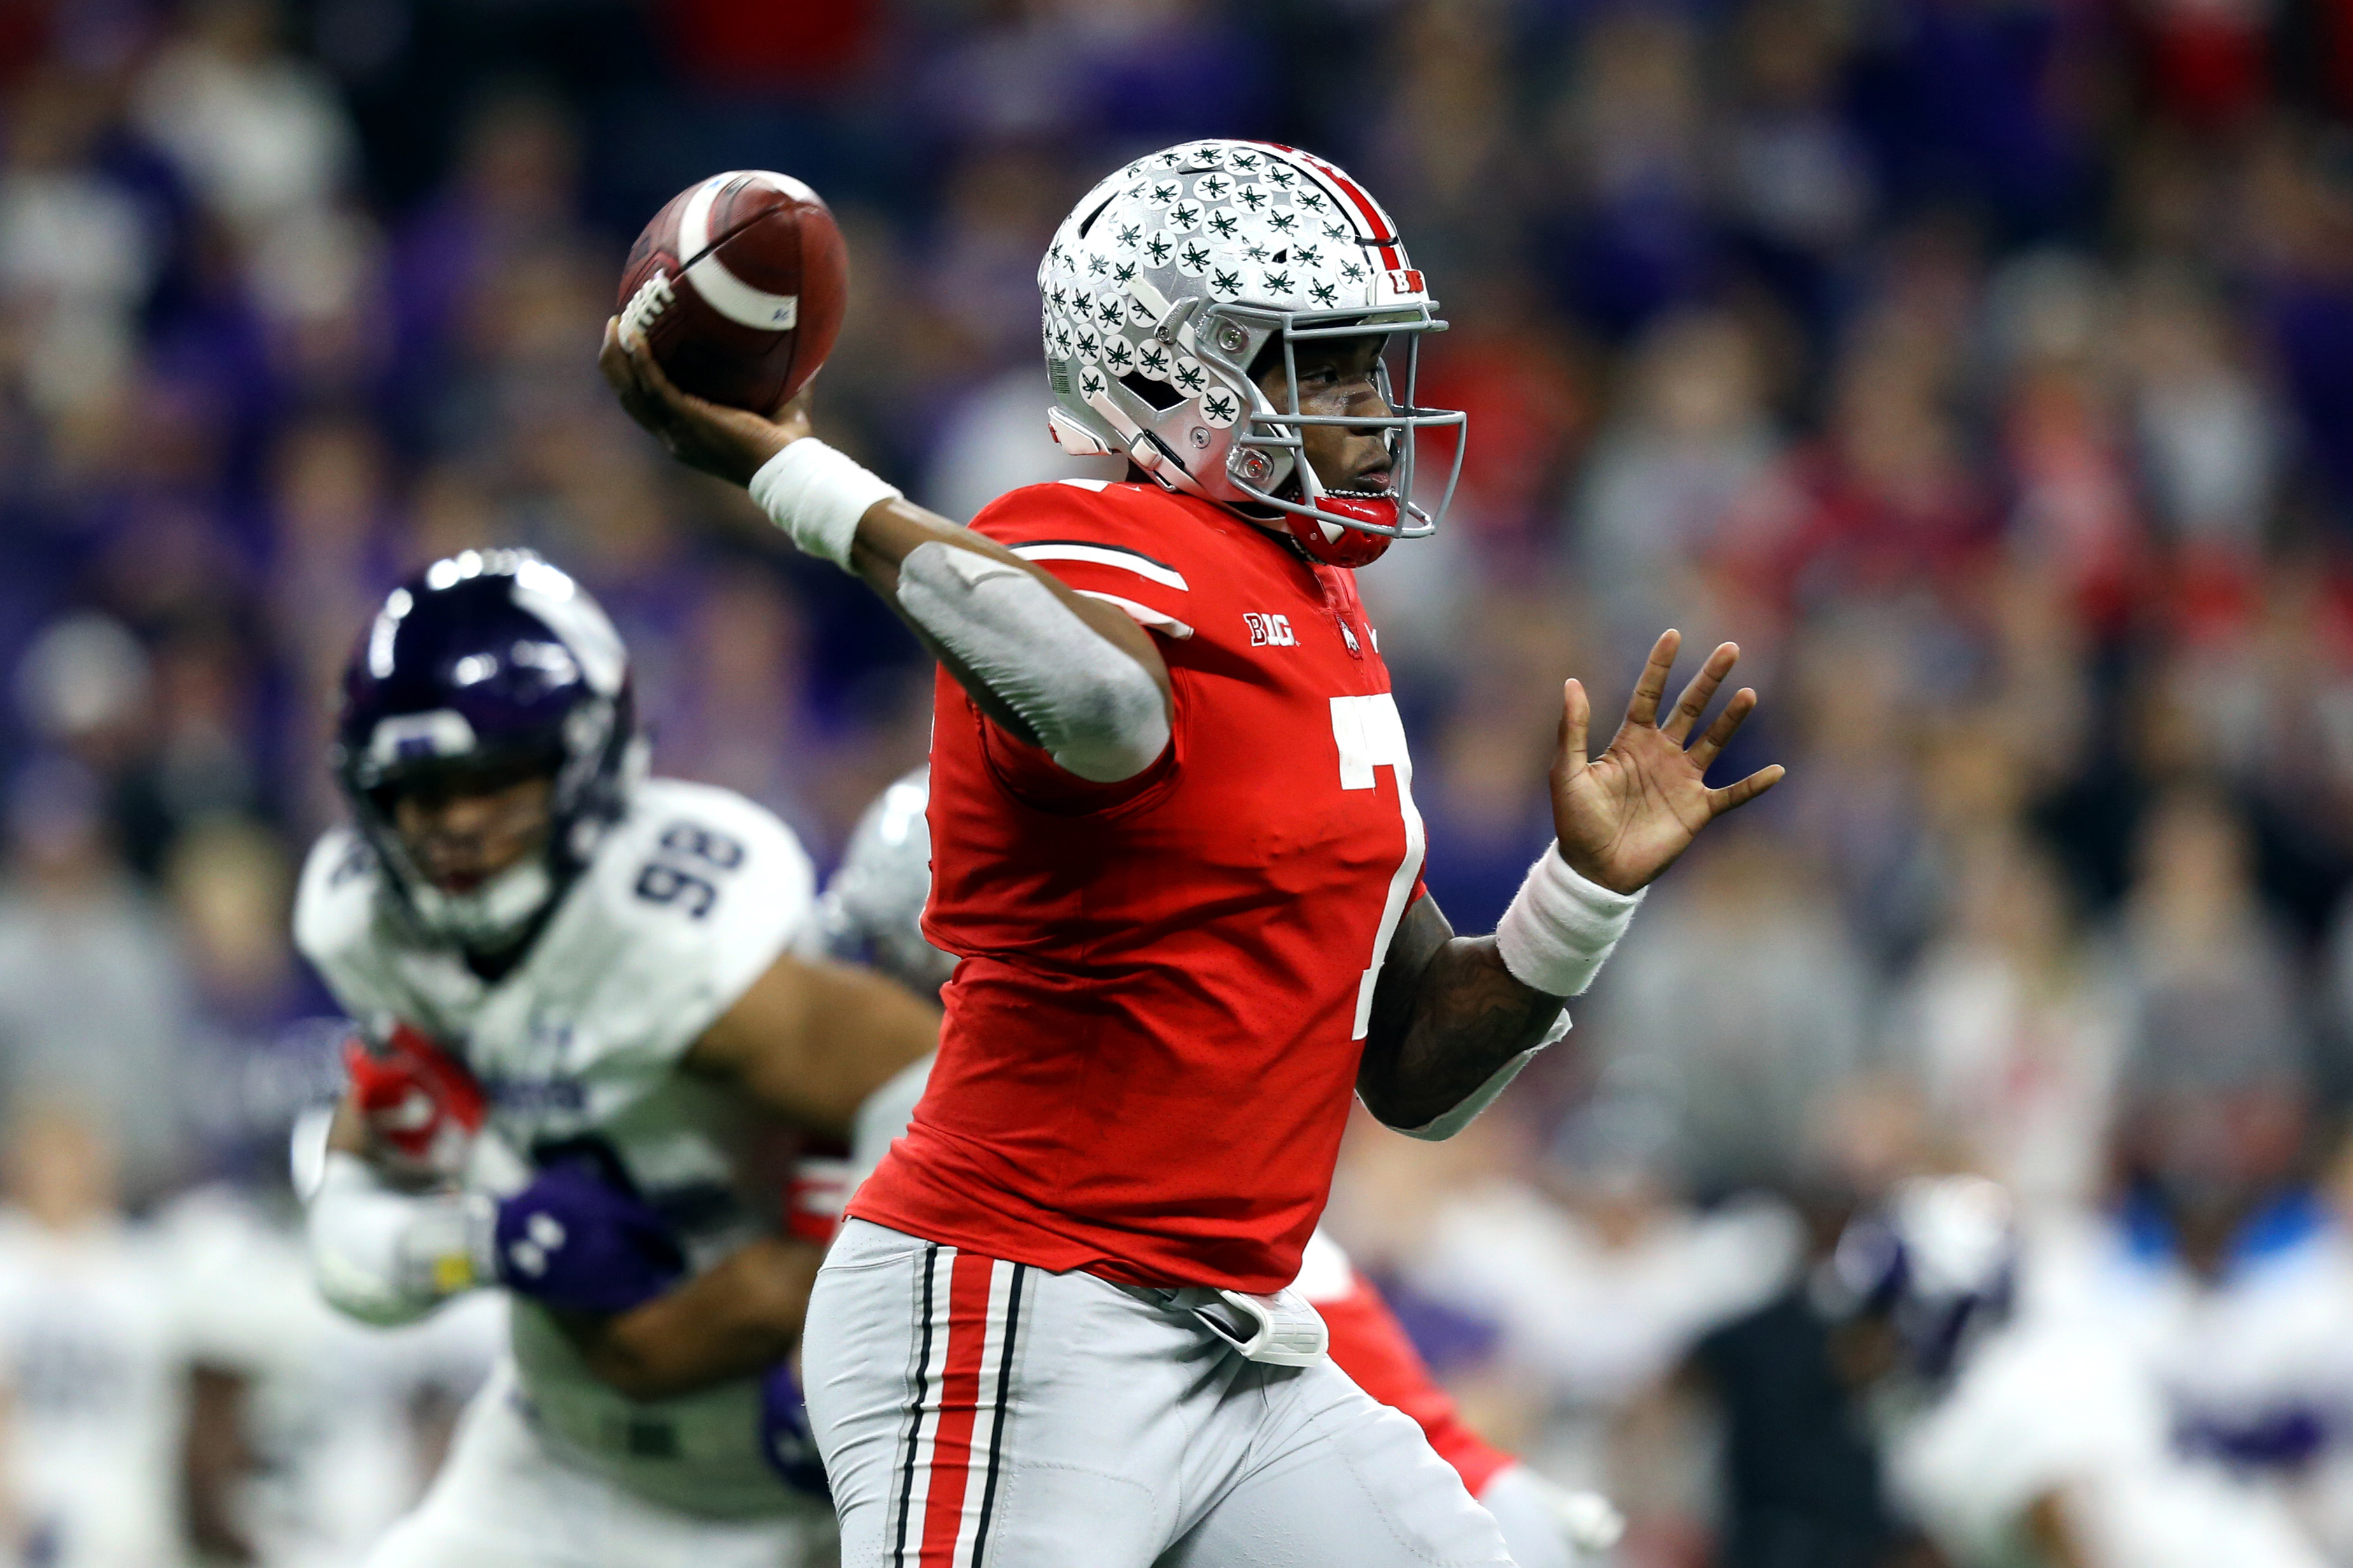 Dwayne Haskins' ability to attack downfield crucial vs Washington